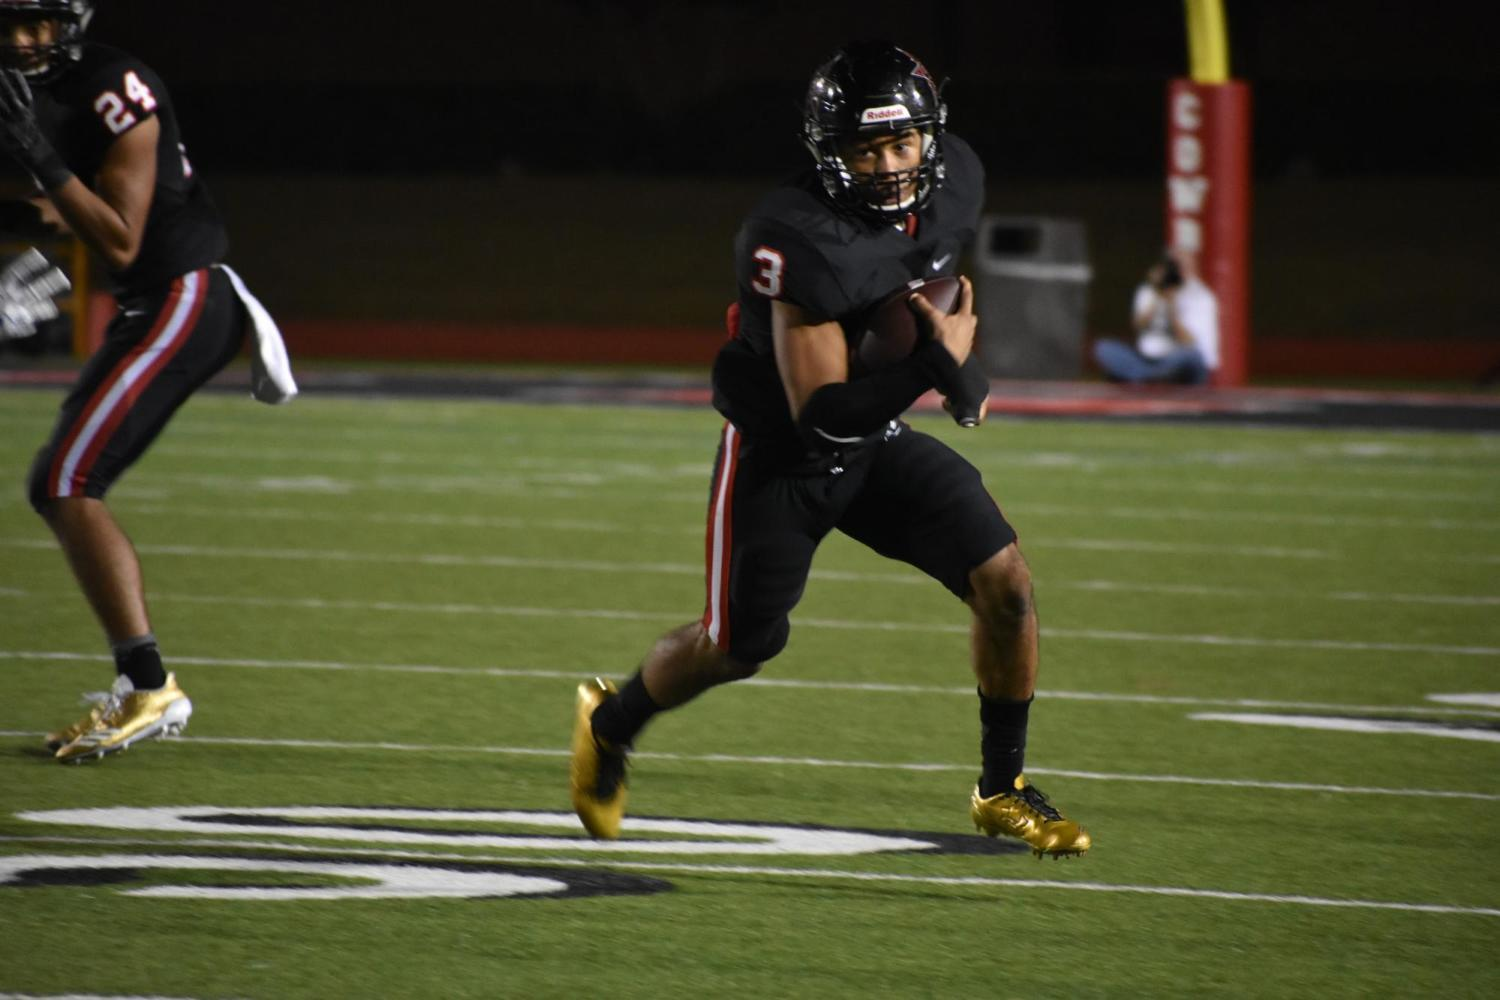 Coppell junior safety Jonathan McGill carries the ball during the first quarter of Friday night's game at Buddy Echols Field. McGill had two touchdowns for the Cowboys as they defeated the Jesuit Rangers, 63- 41.